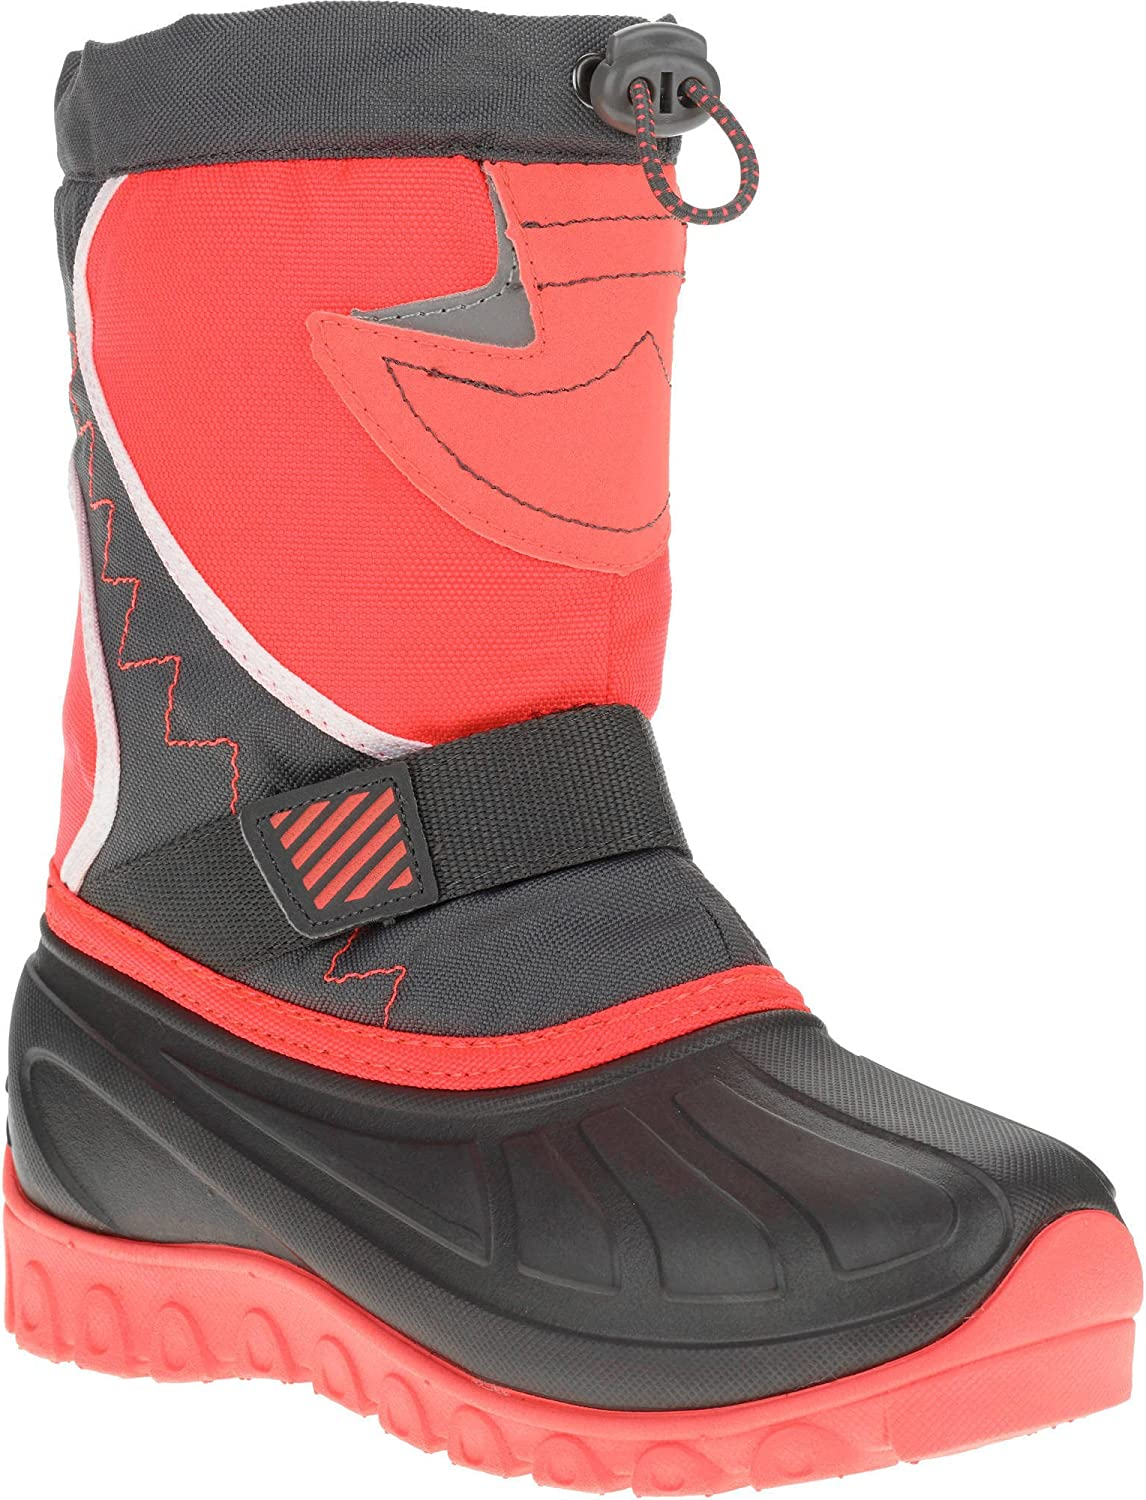 OZARK TRAIL Toddler Girls' Temp Rated Pull-on Winter Boot